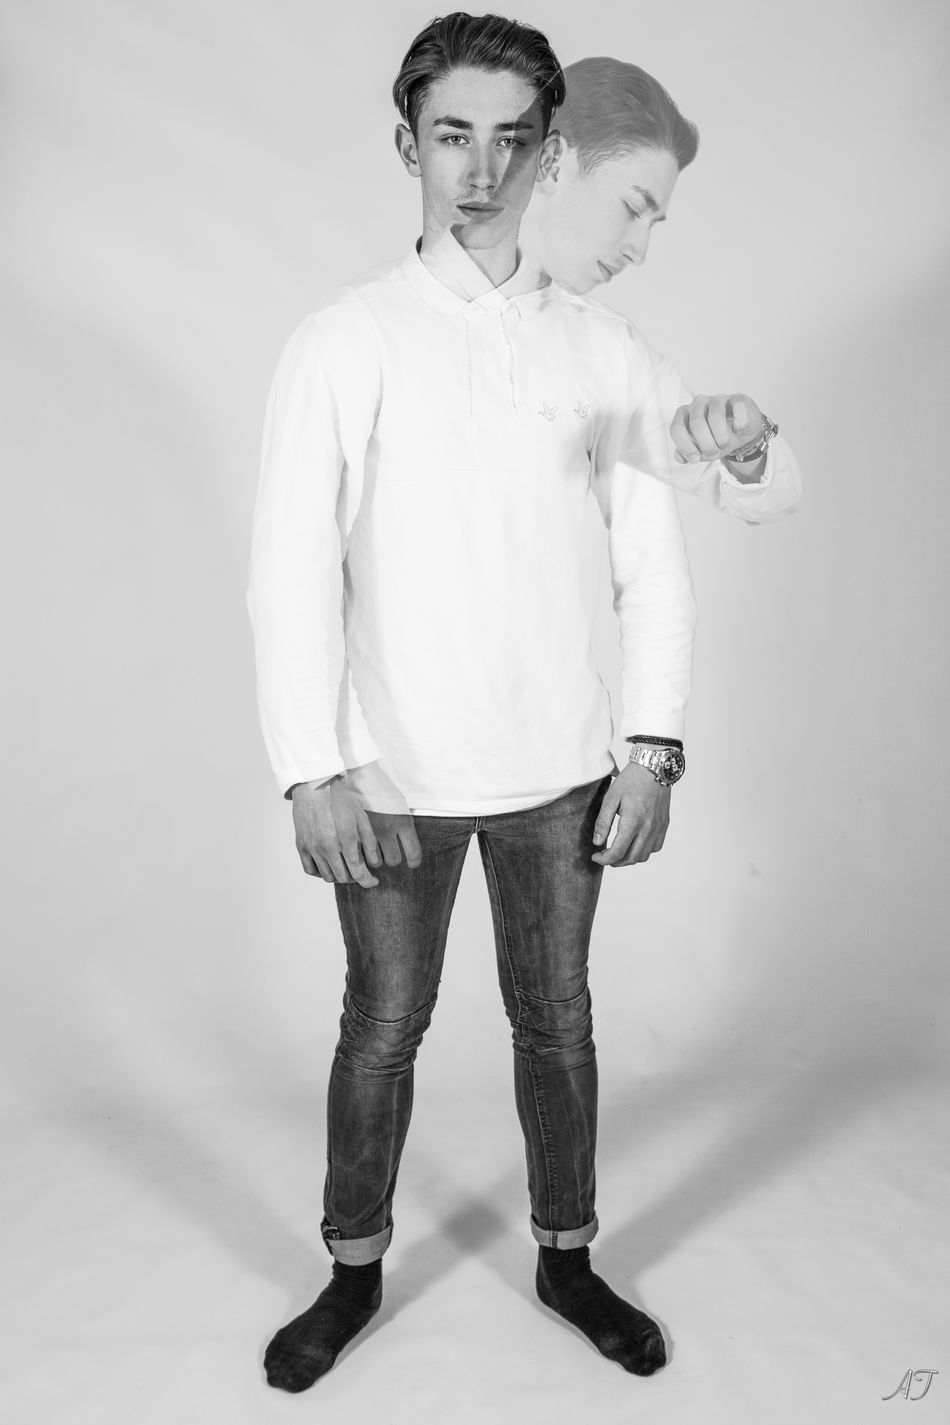 Evan distorsion 3-1 Attitude Casual Clothing Distorsion Fashion Fashion Model Front View Full Length Lifestyles Looking At Camera One Person Standing Studio Shoot White Young Adult Young Men